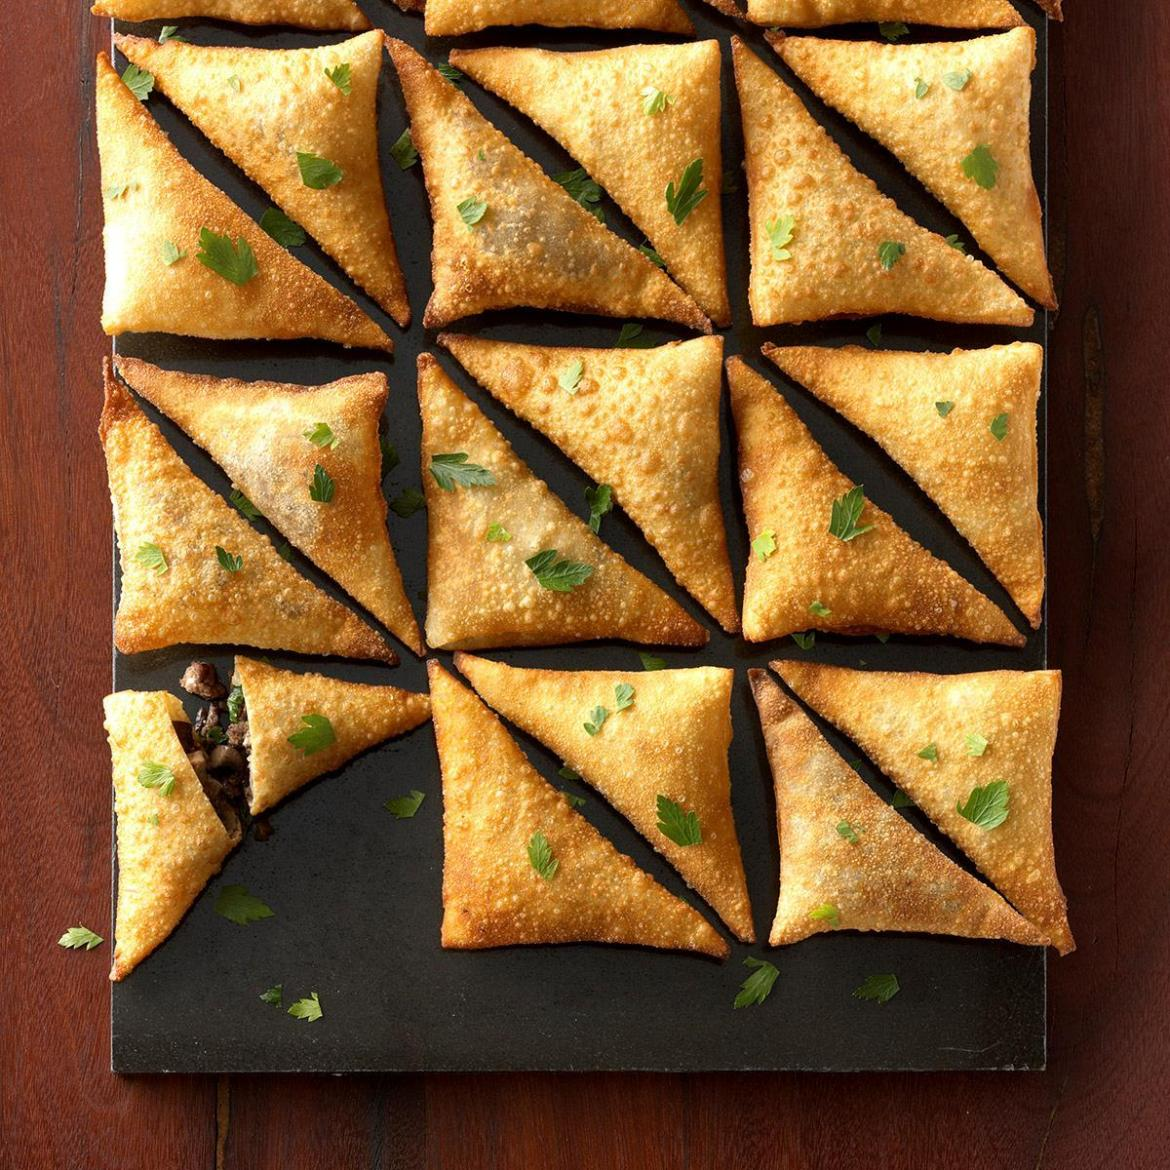 15 Dishes To Serve At Your Engagement Party